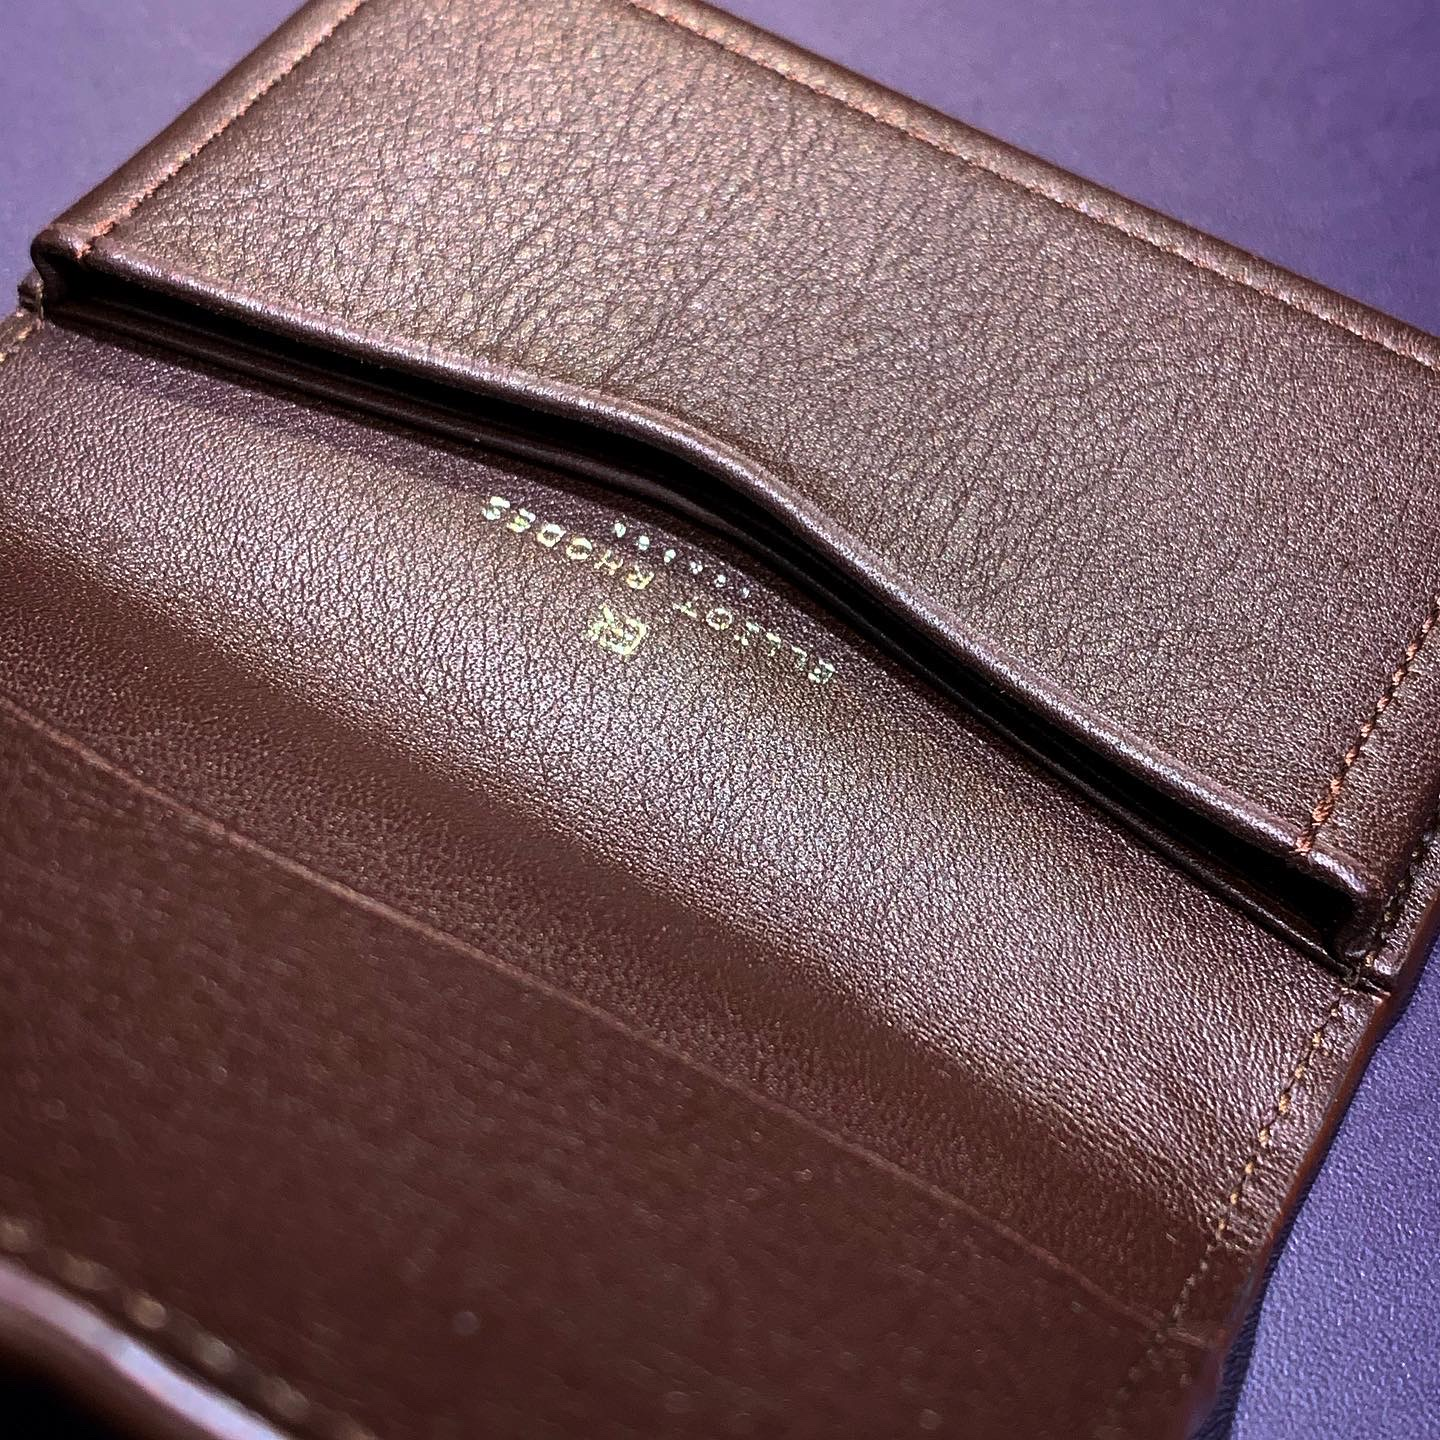 ELLIOT RHODES LONDON CARD CASE